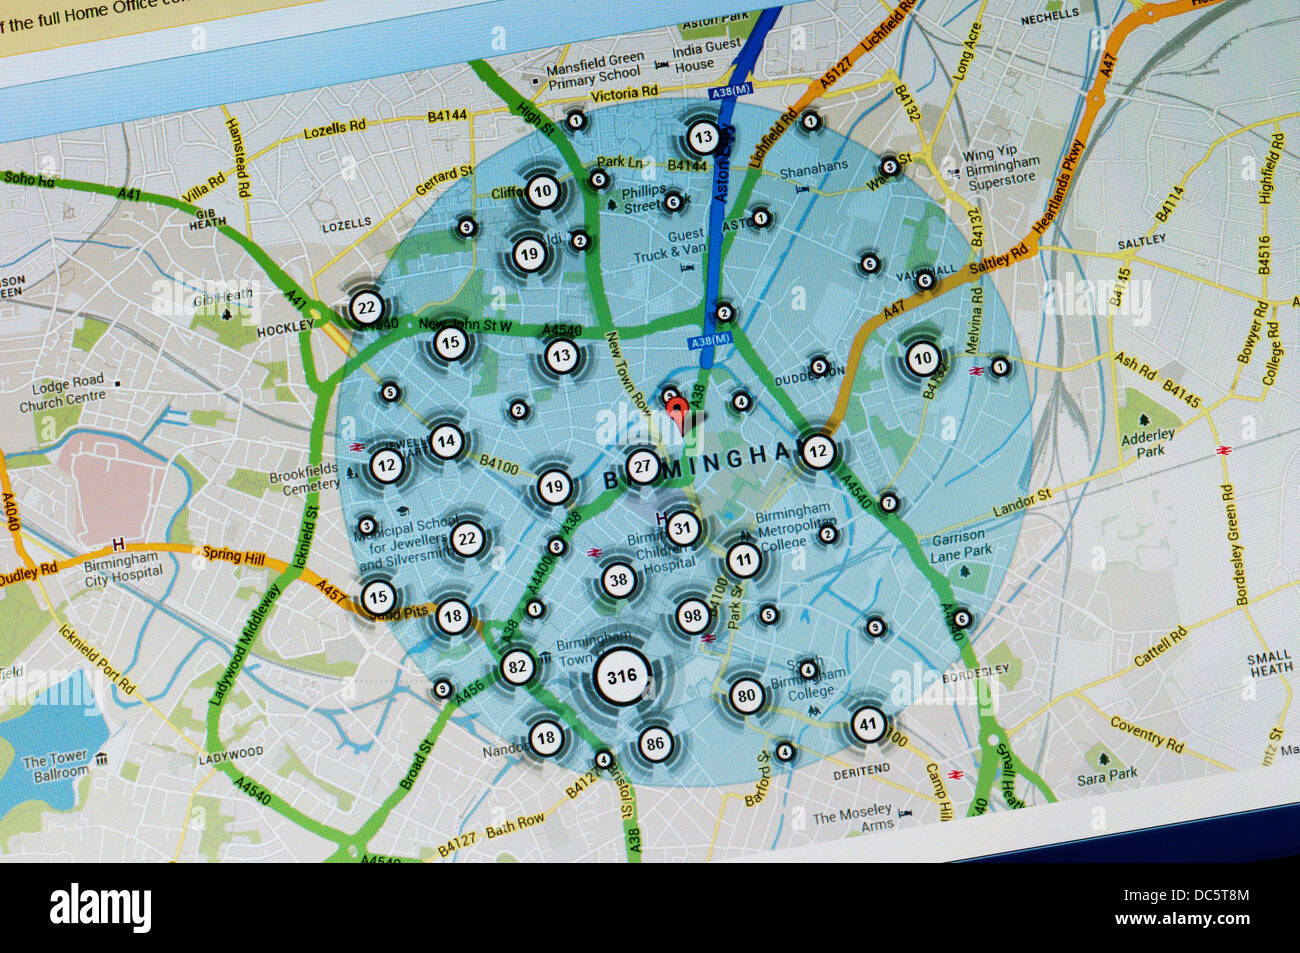 incidence of crime in central birmingham shown on crime map from policeuk